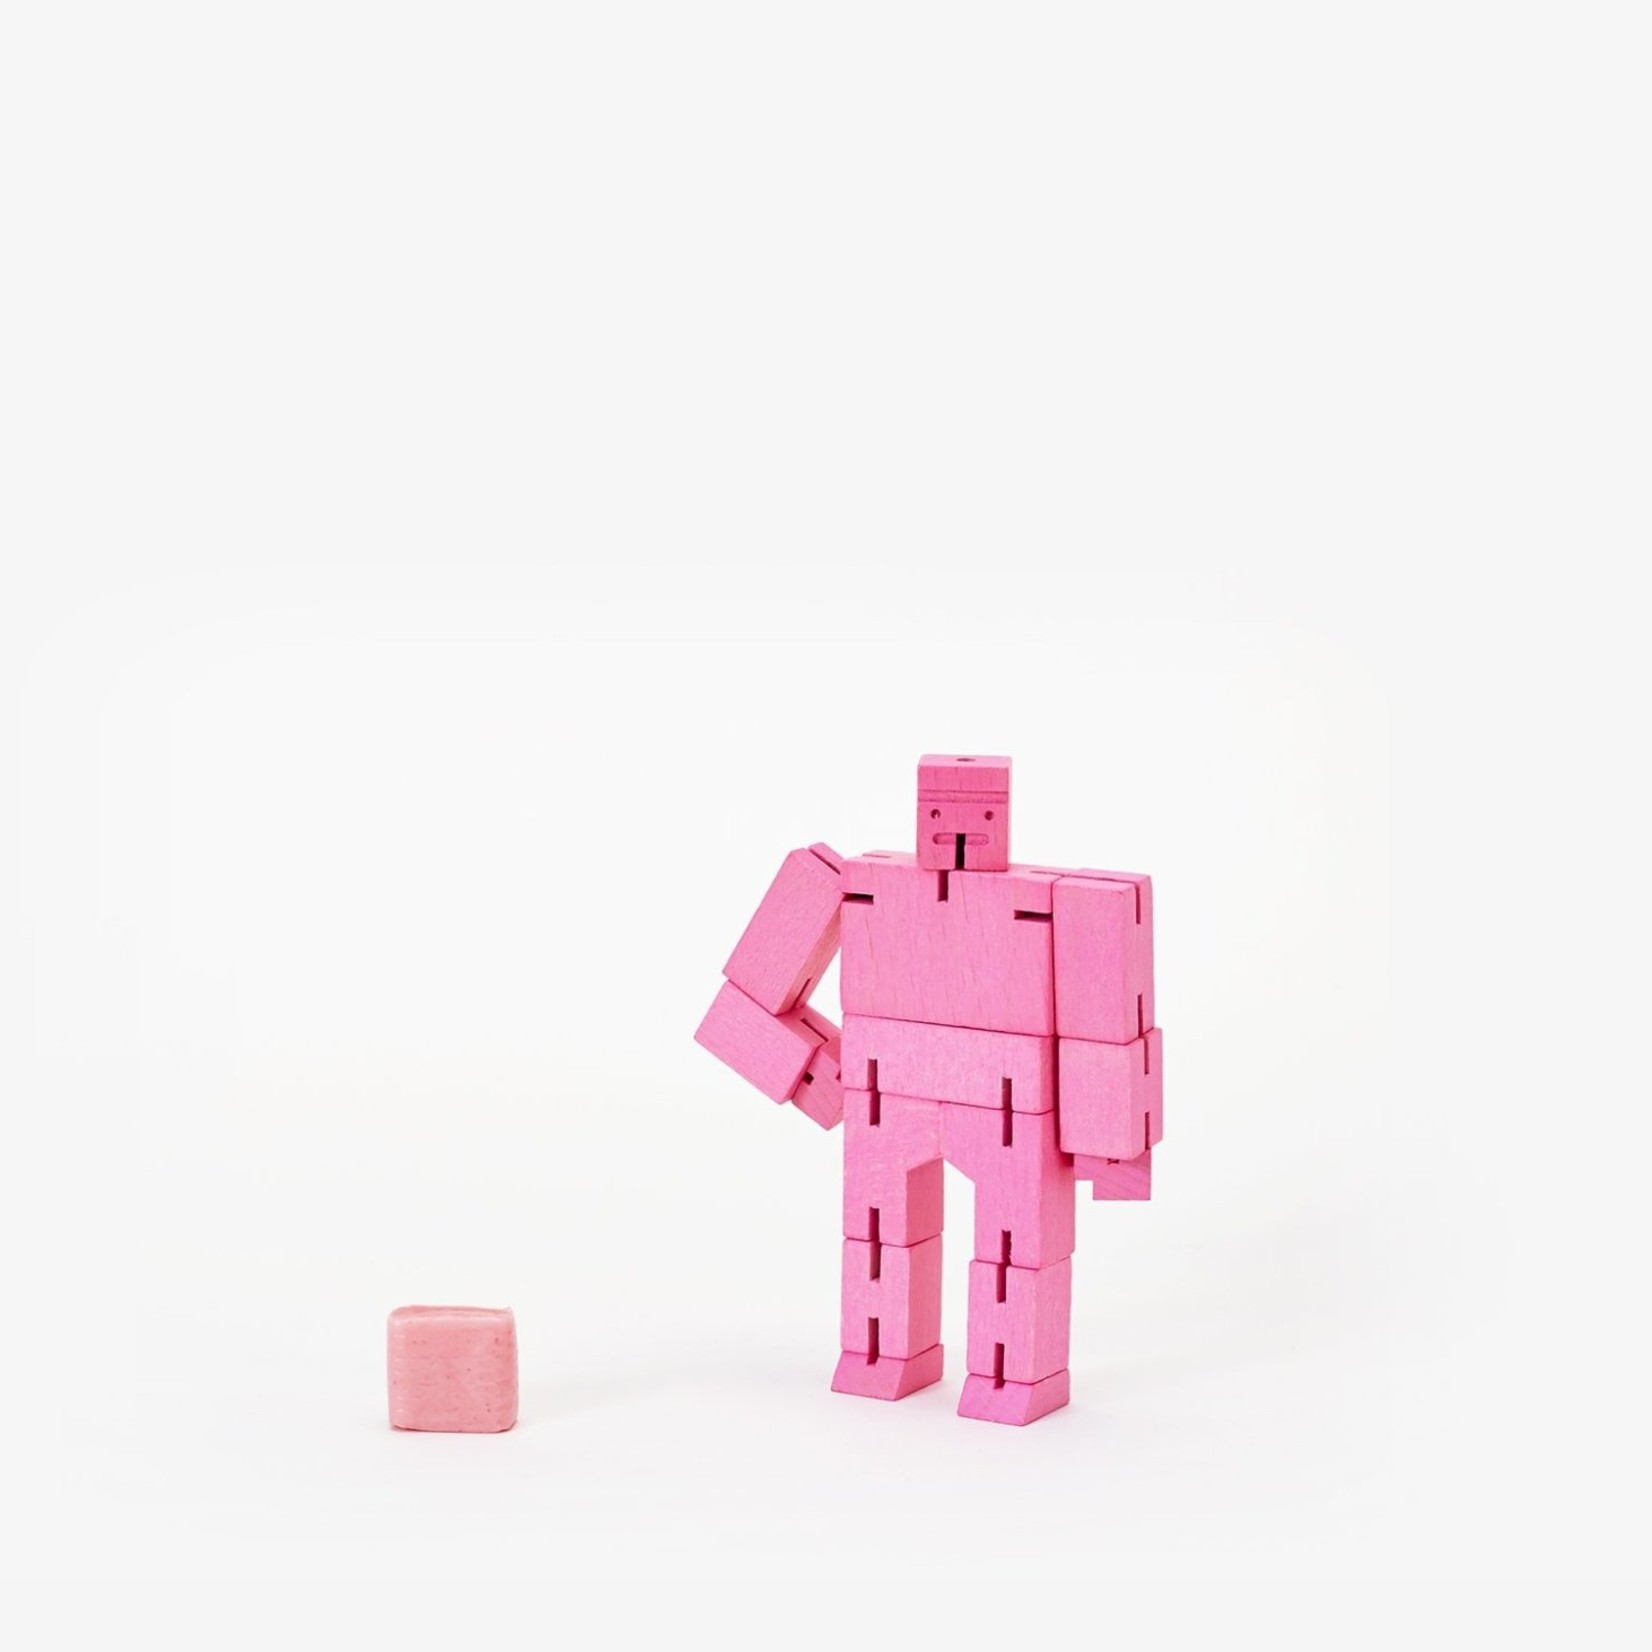 Areaware Areaware - Cubebot Micro - More Options Available